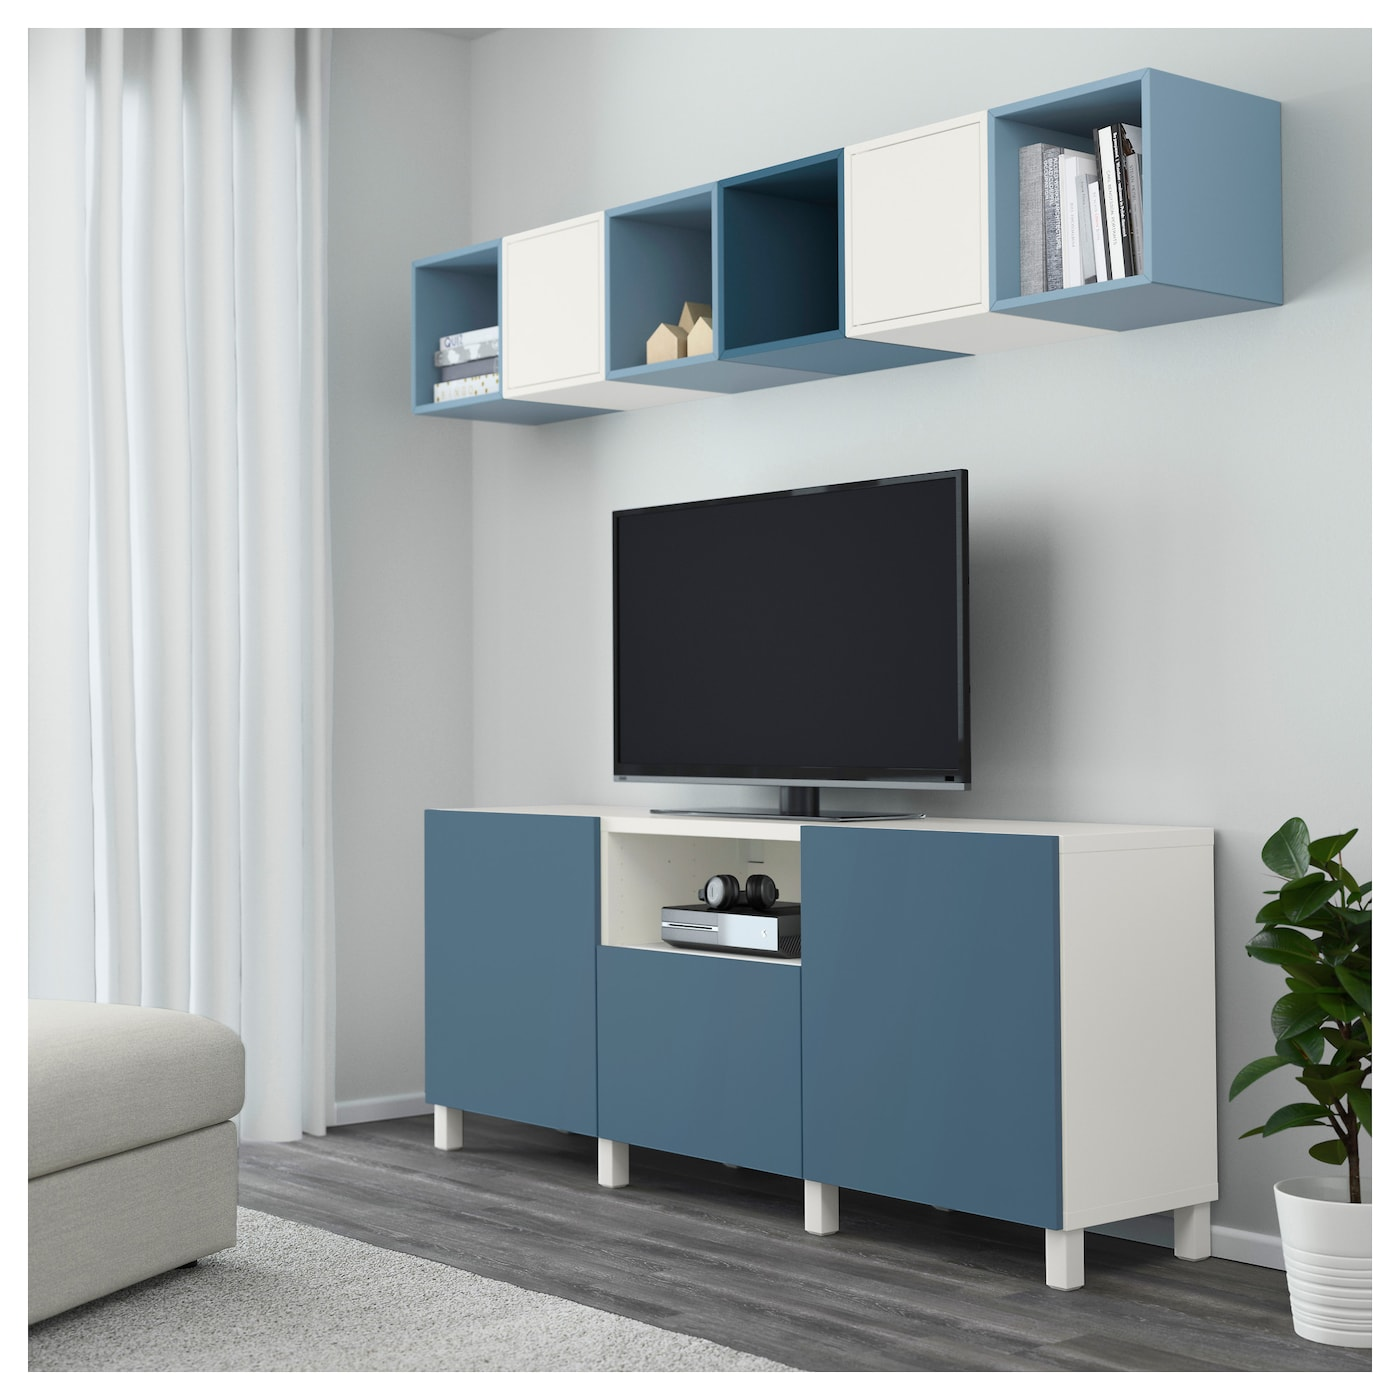 eket best combinaison rangement tv blanc bleu clair bleu fonc 210x40x220 cm ikea. Black Bedroom Furniture Sets. Home Design Ideas